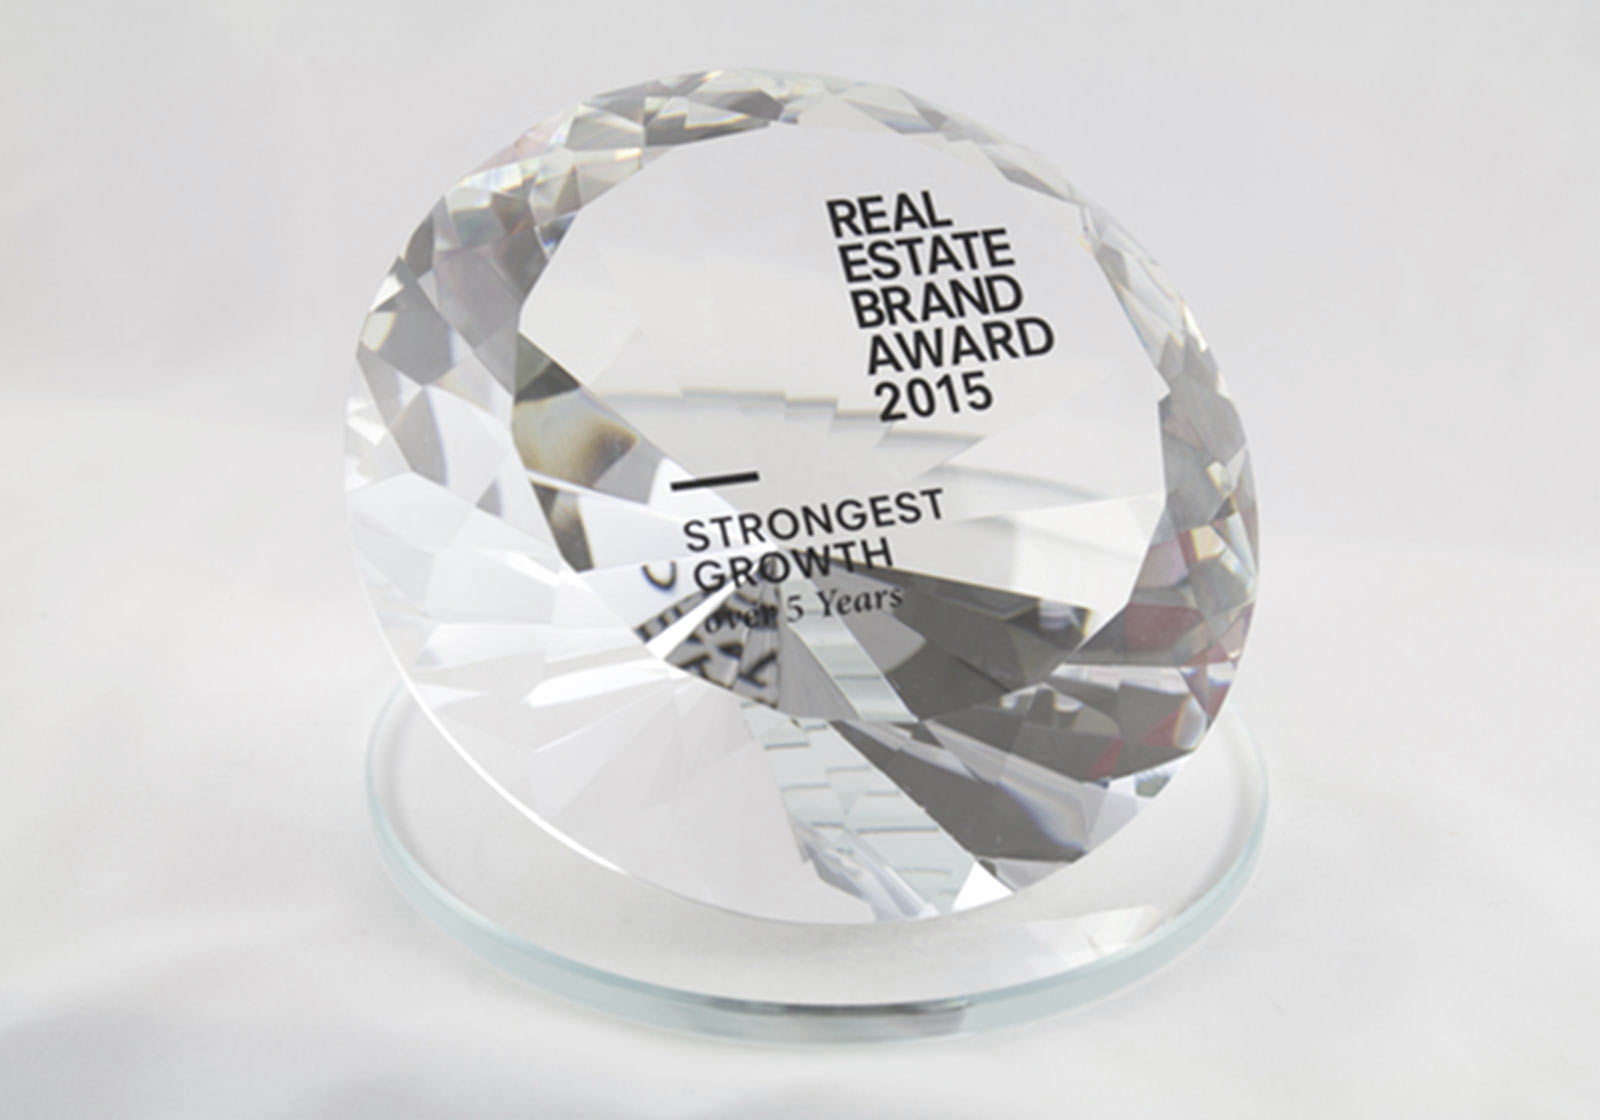 Real Estate Brand Award. Photo: European Real Estate Brand Institute